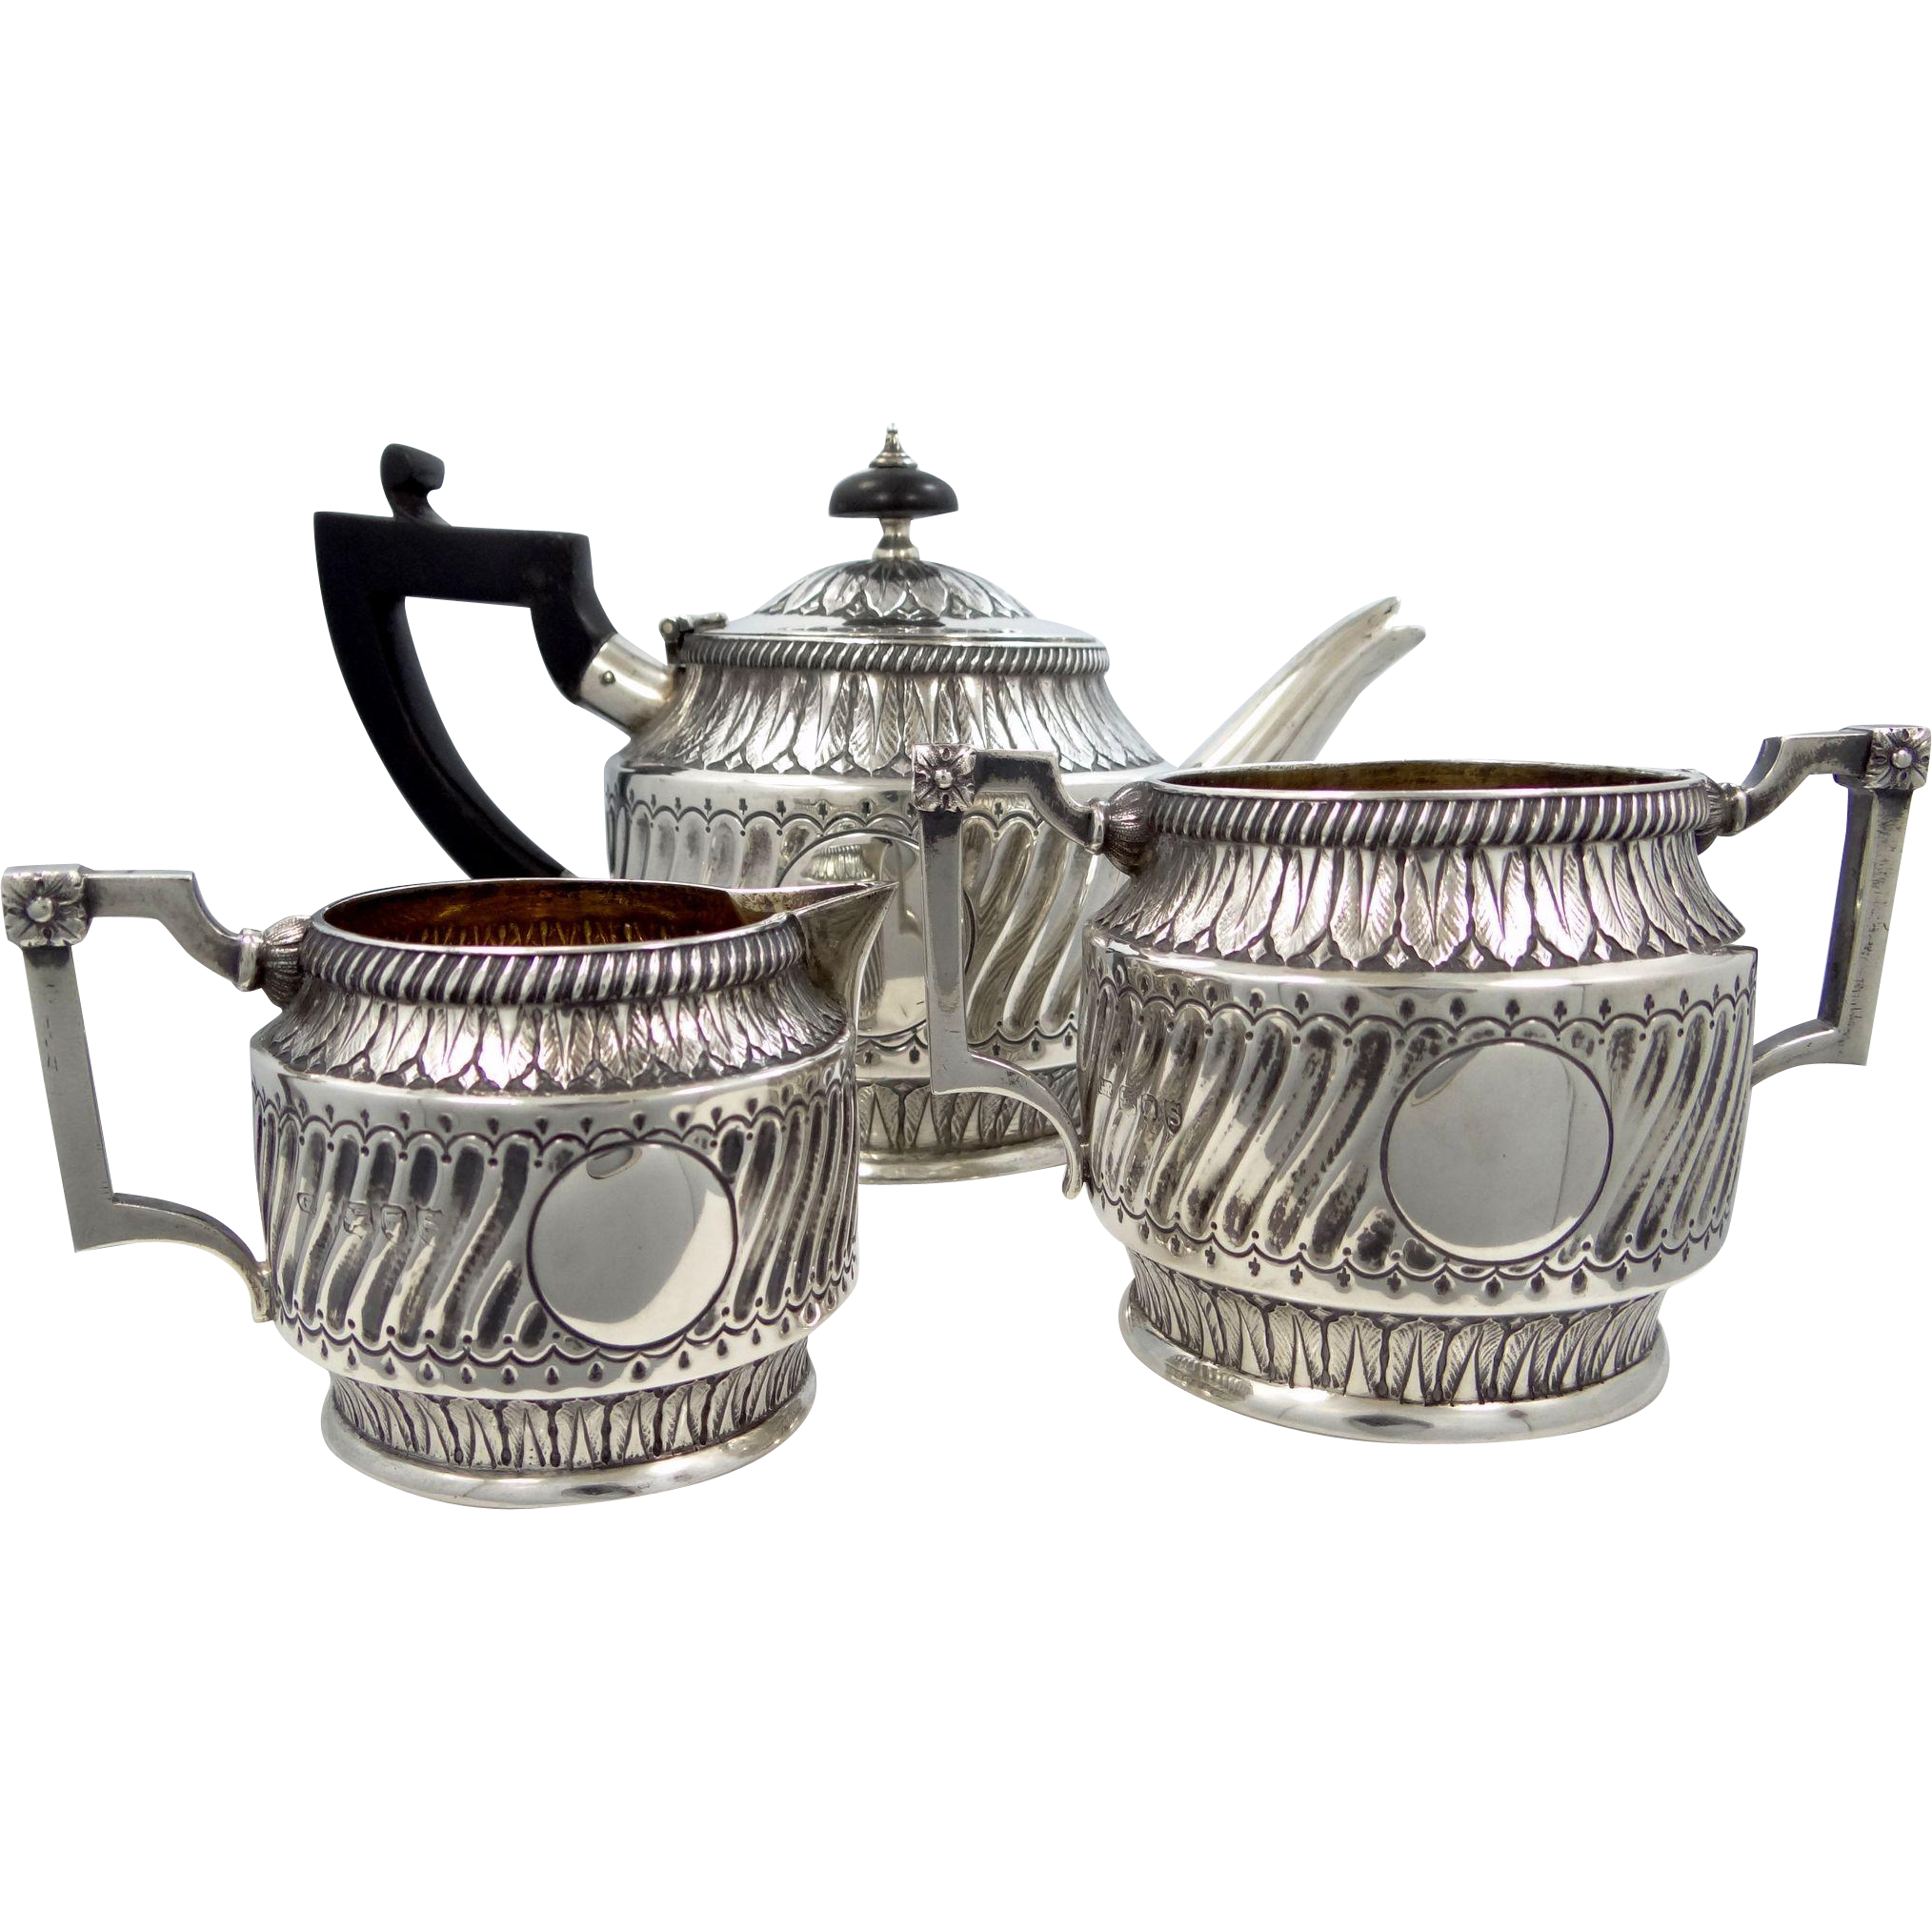 1893 Sterling Silver Tea Set with George Fox London Hallmarks